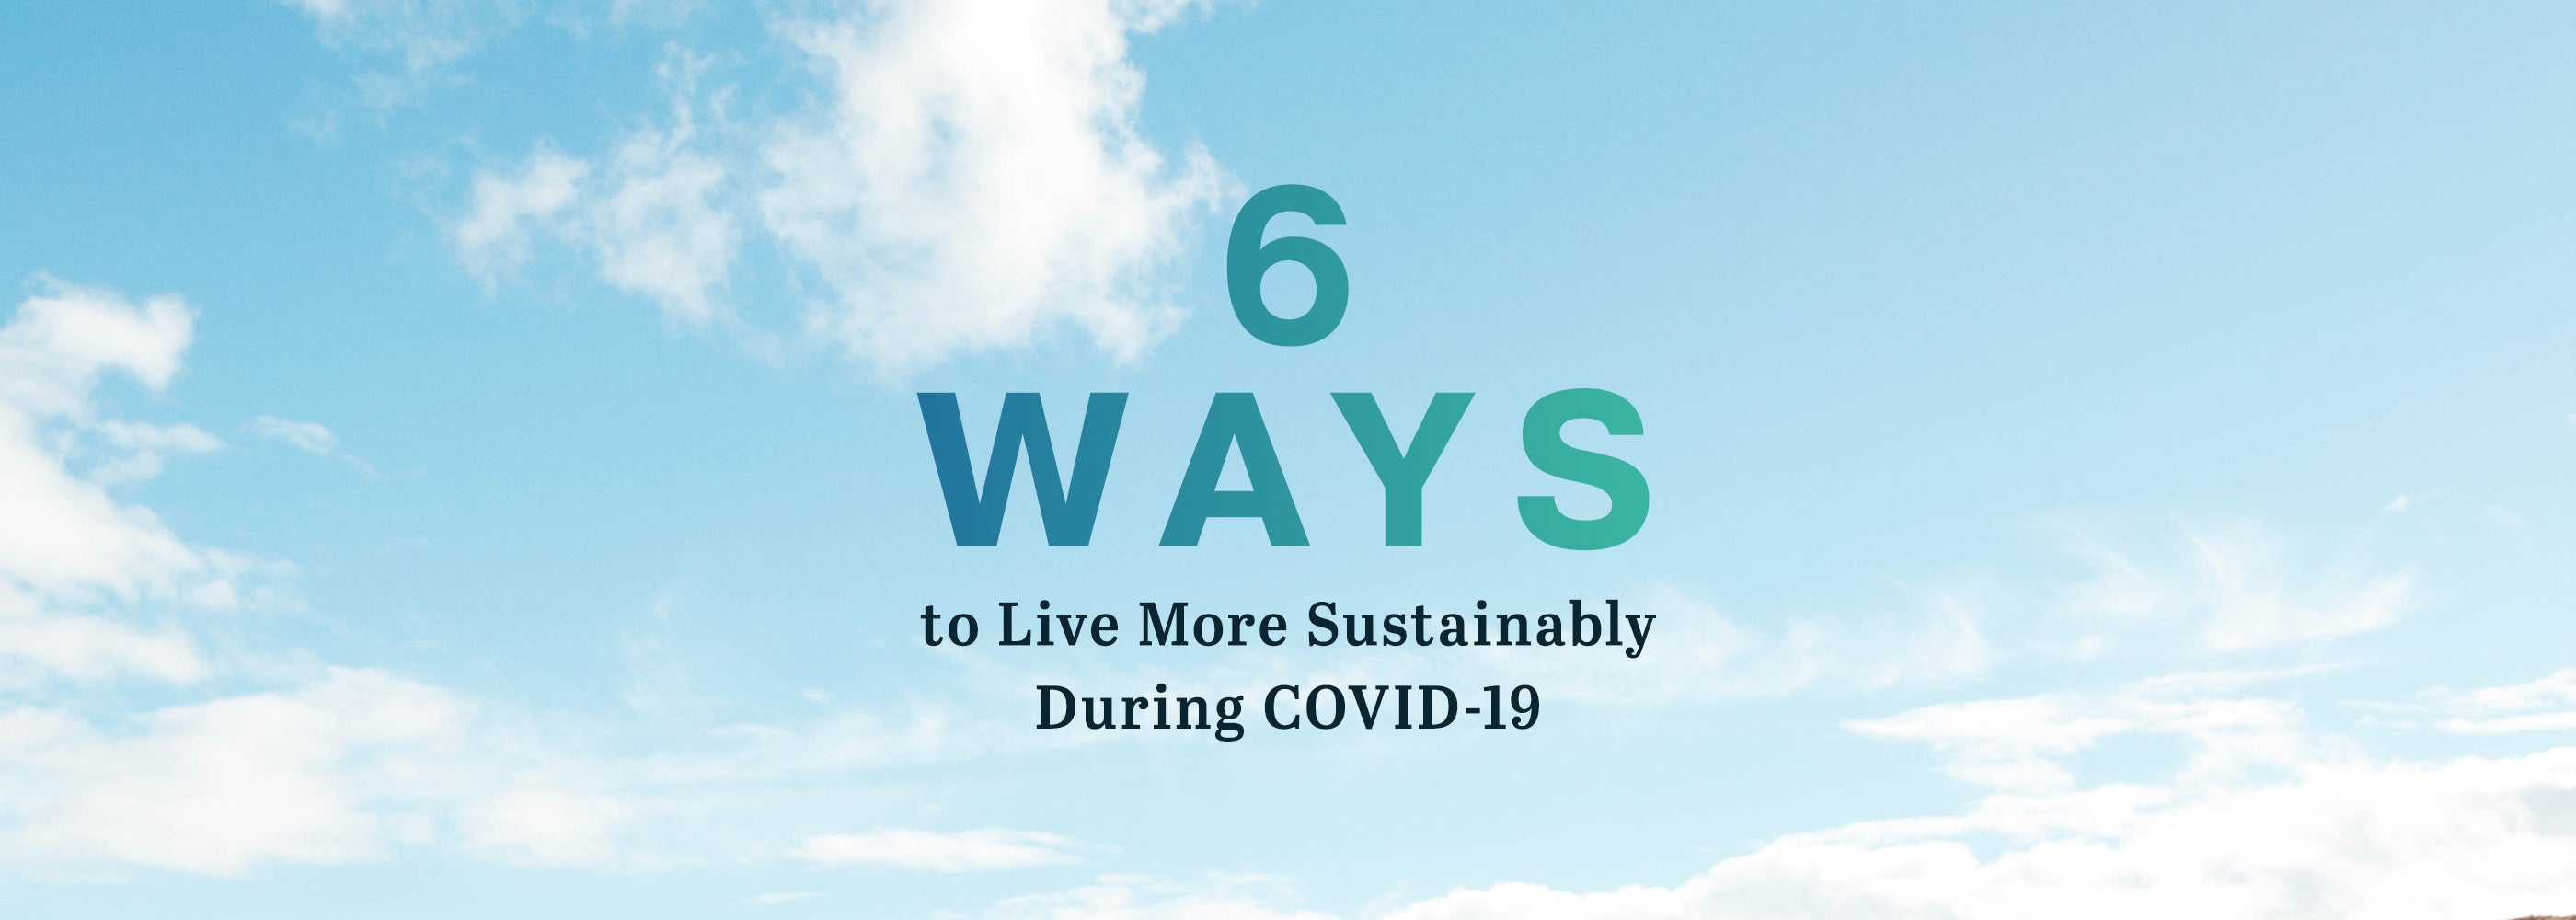 6 ways to live more sustainably during covid-19